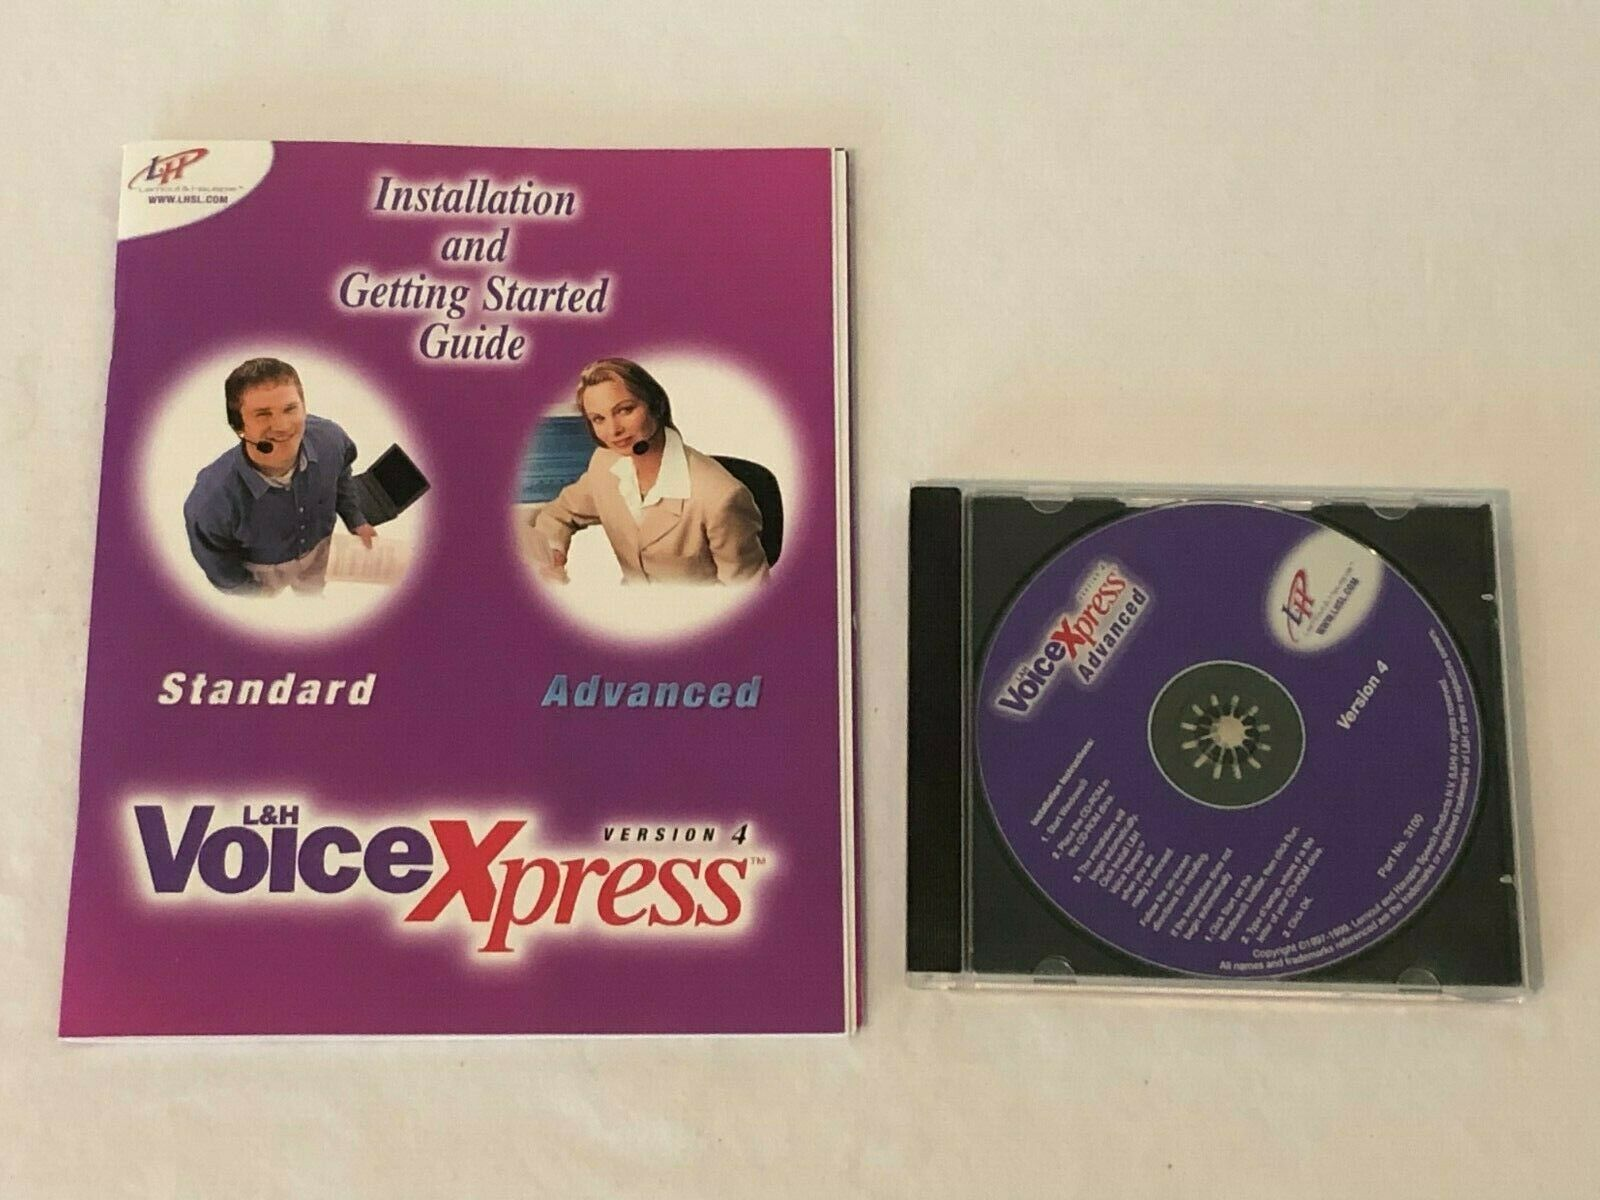 Voice Xpress Advanced Version 4 PC Computer Software Manual Guide and Disk